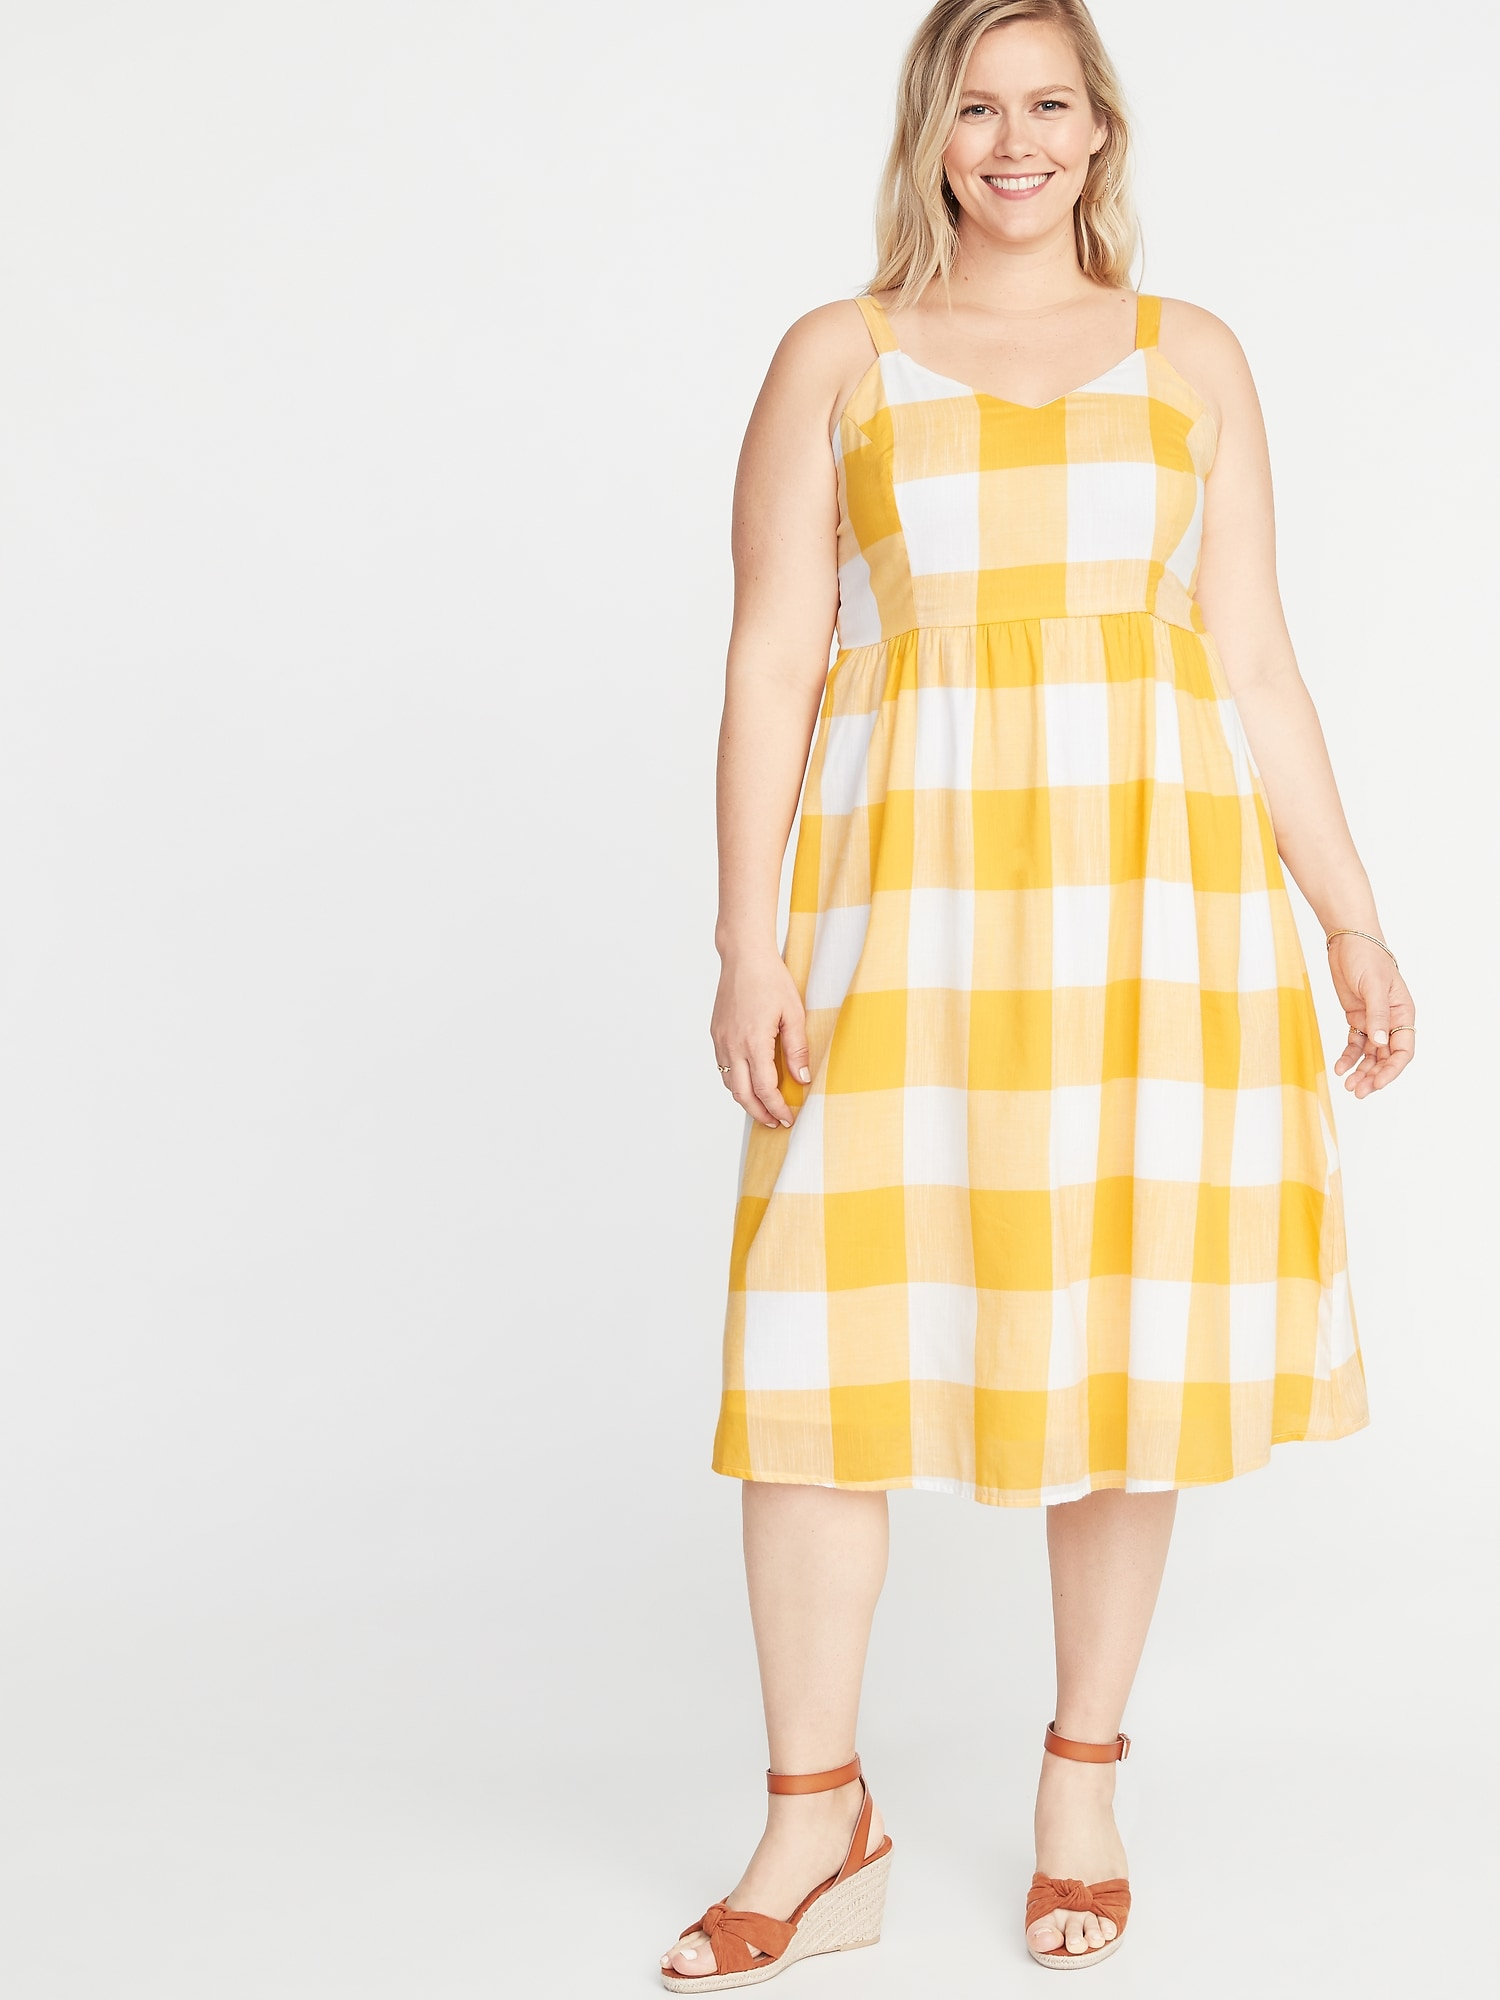 Gingham Fit & Flare Plus-Size Cami Dress | Old Navy